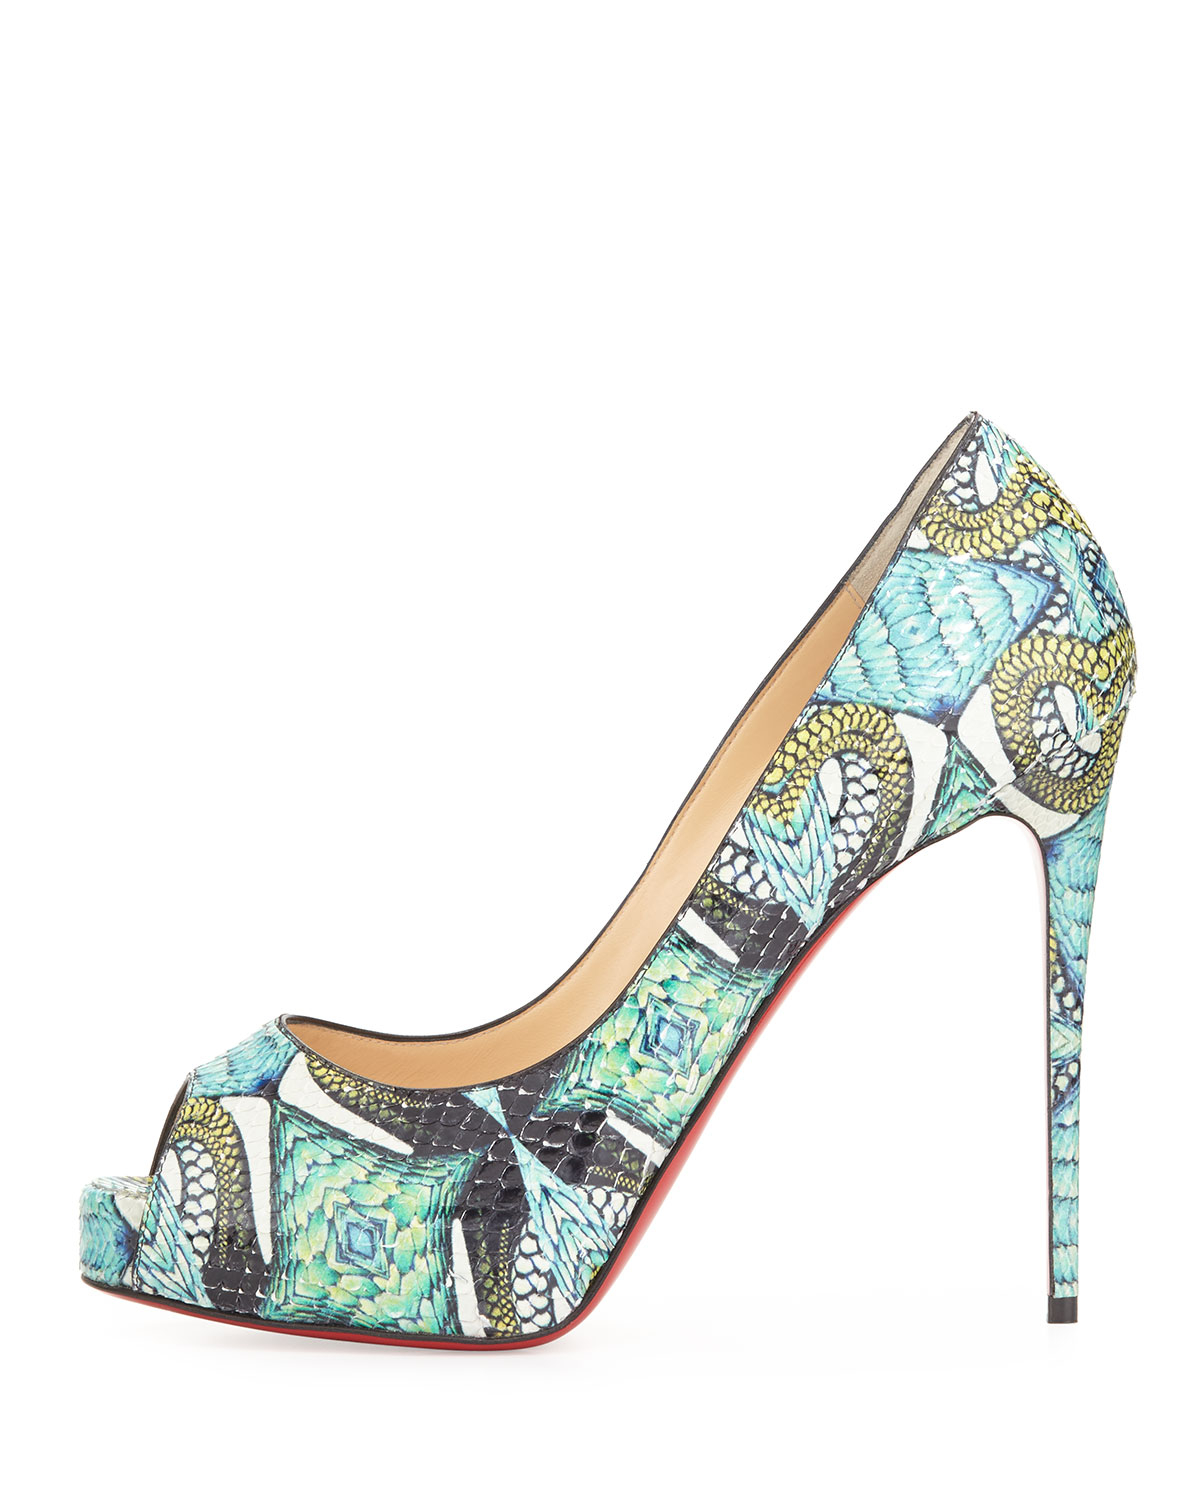 louboutin New Very Prive Multicolore